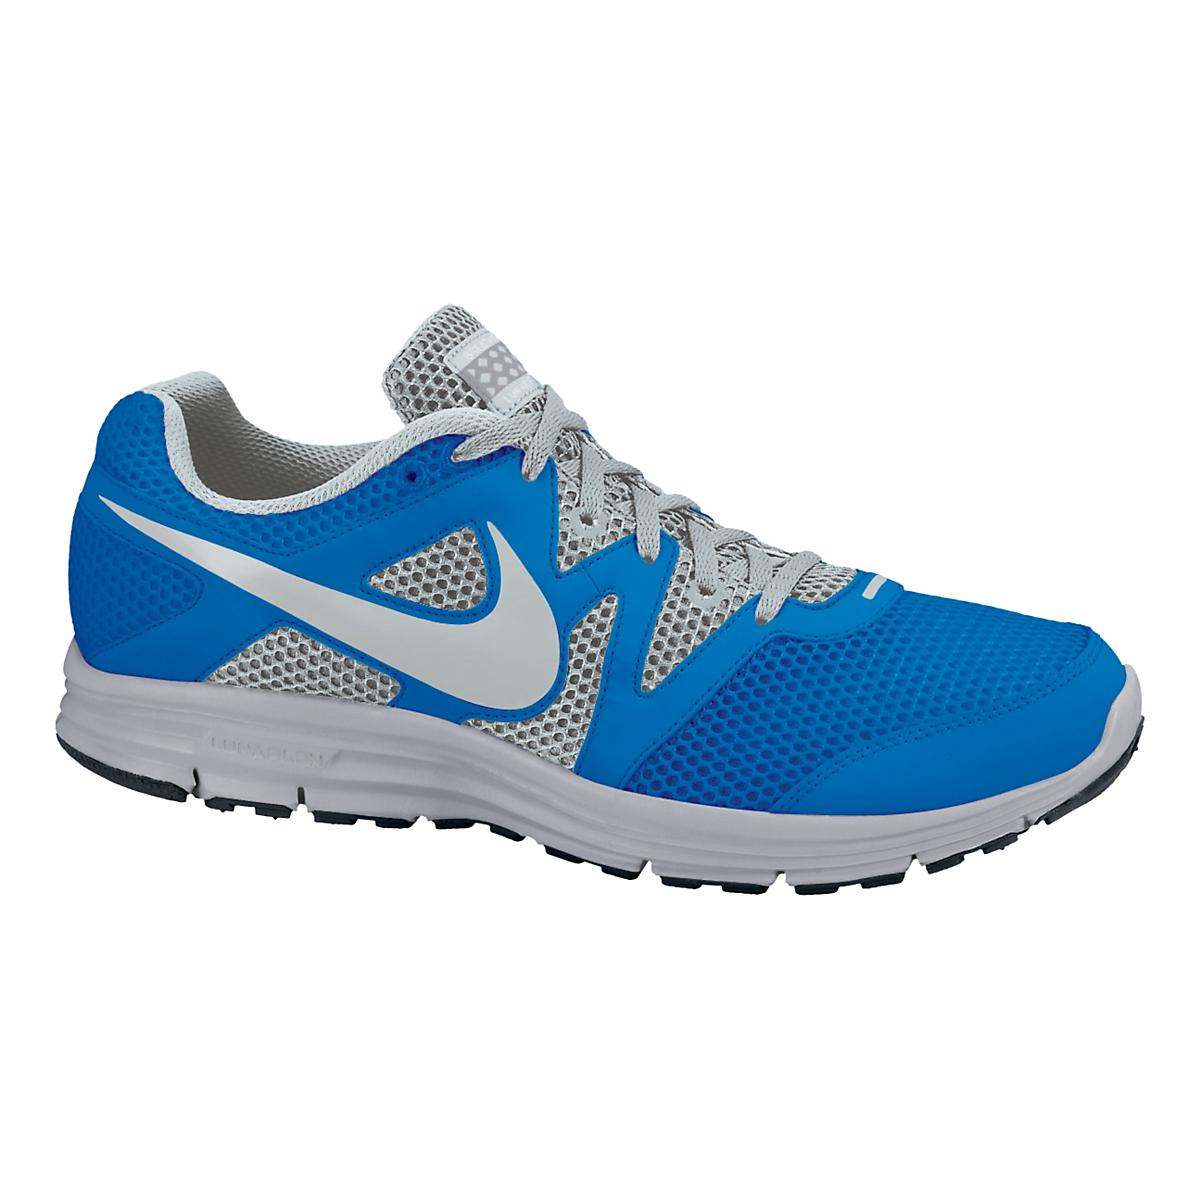 5d62bd53944a Mens Nike LunarFly+ 3 Breathe Running Shoe at Road Runner Sports